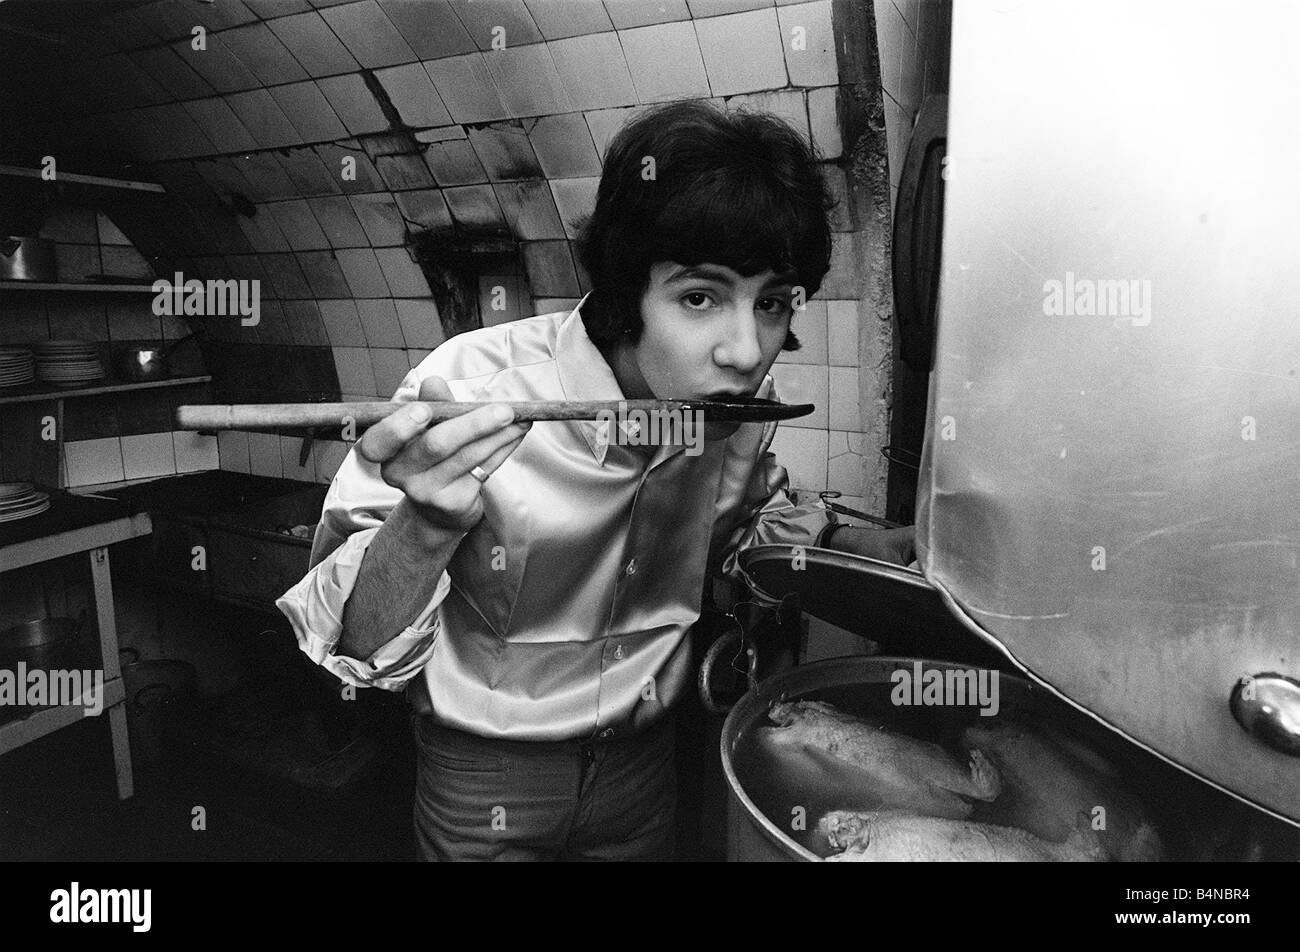 Cat Stevens February 1967 Composer And Singer Cooking In The Kitchen Stock Photo Alamy